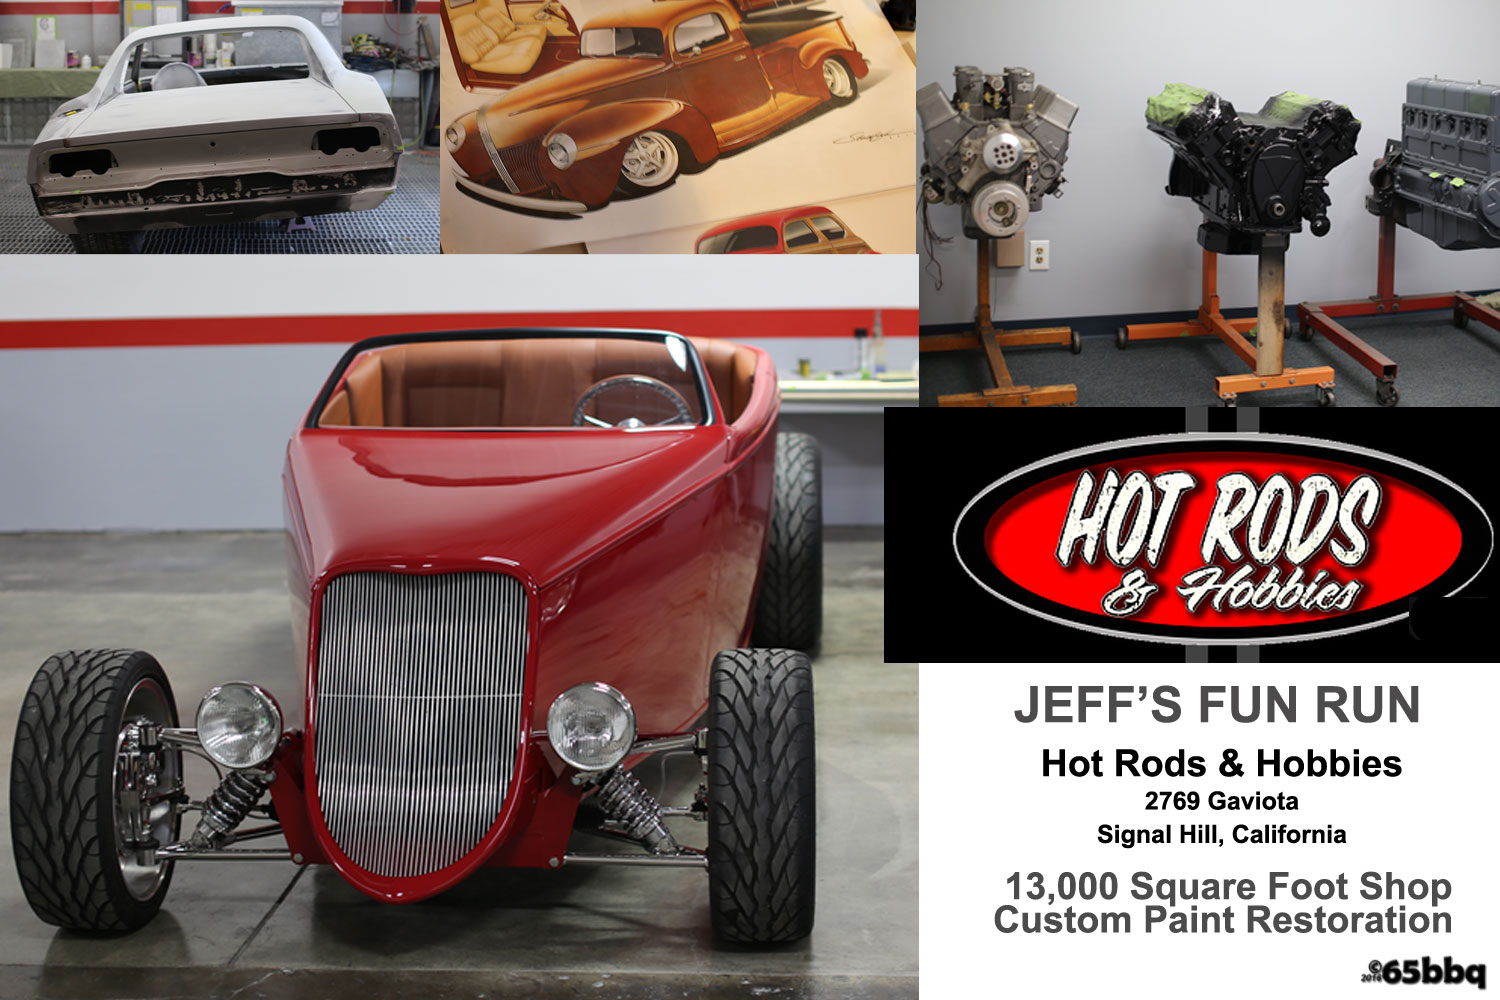 hot rod & hobbies Jeff's fun run 2016 65bbq